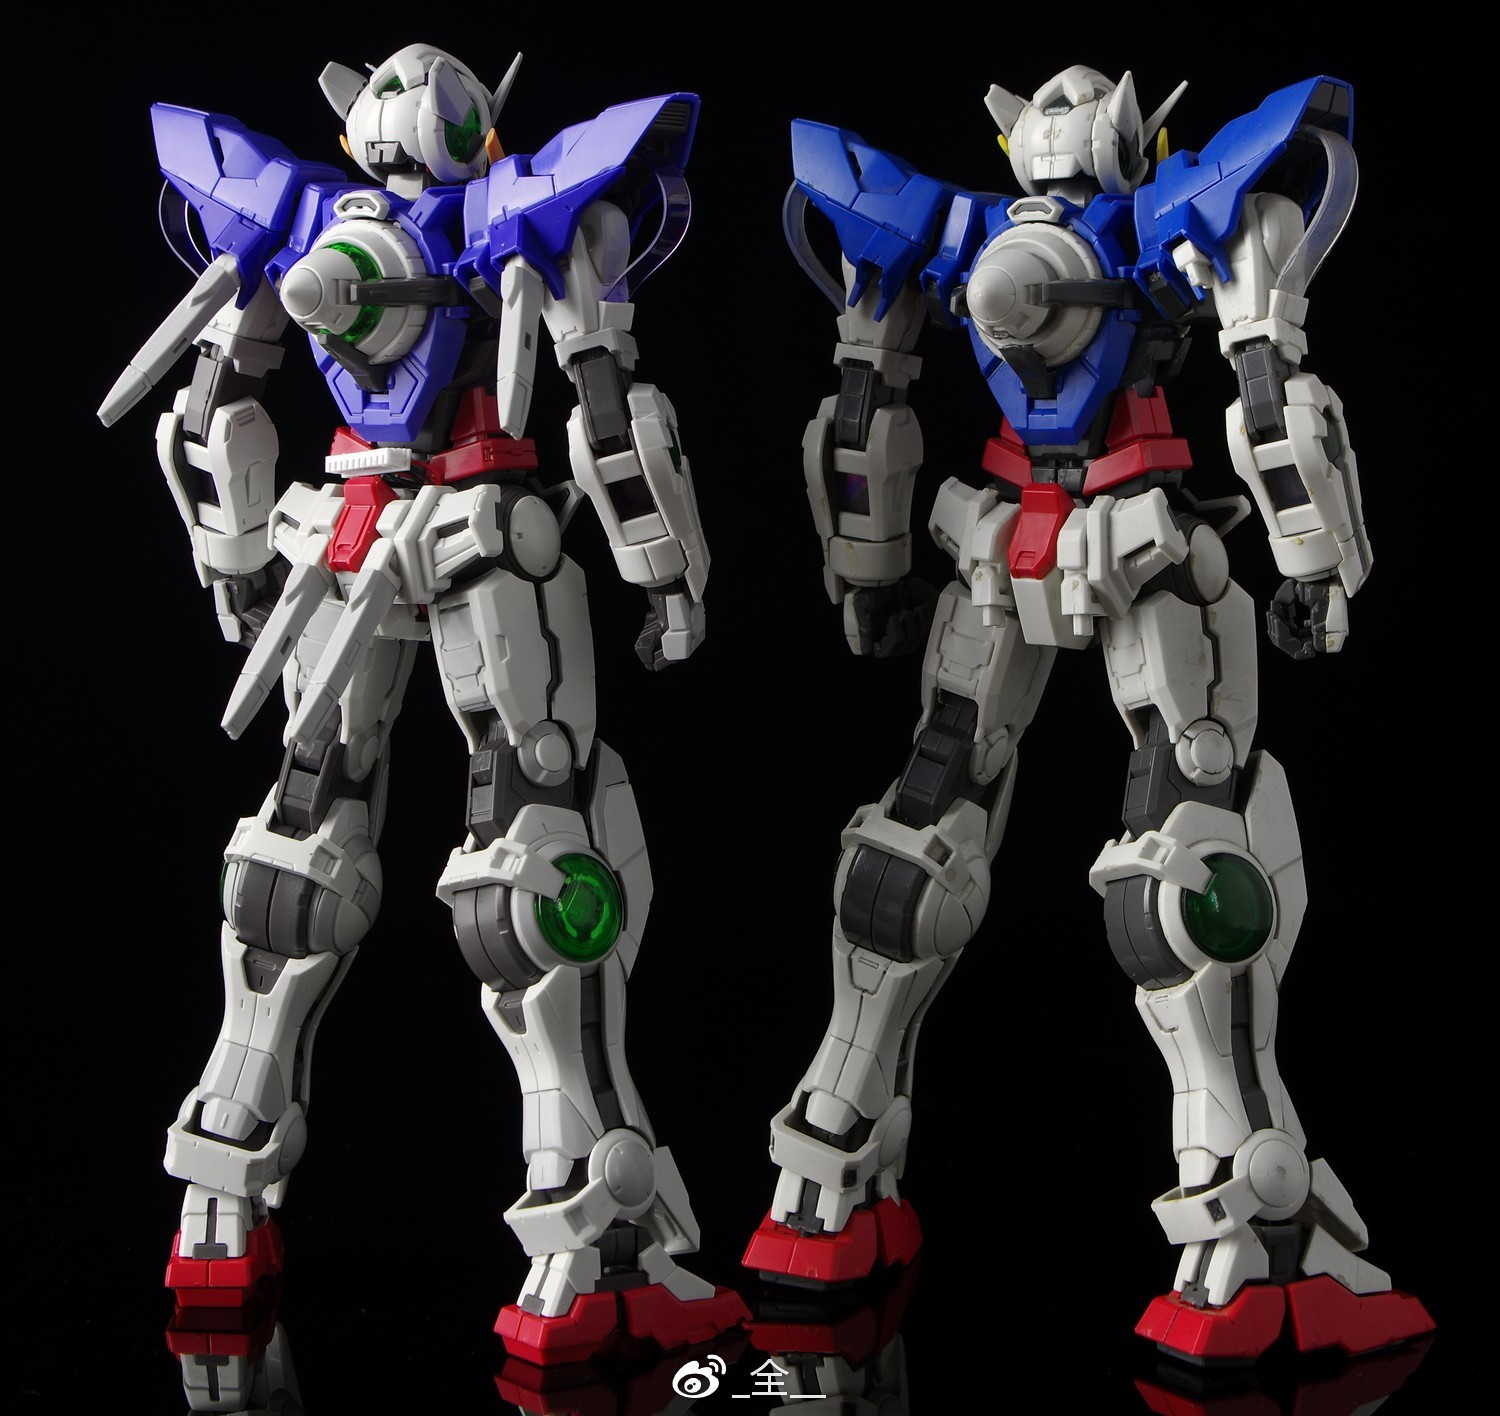 S269_mg_exia_led_hobby_star_inask_045.jpg